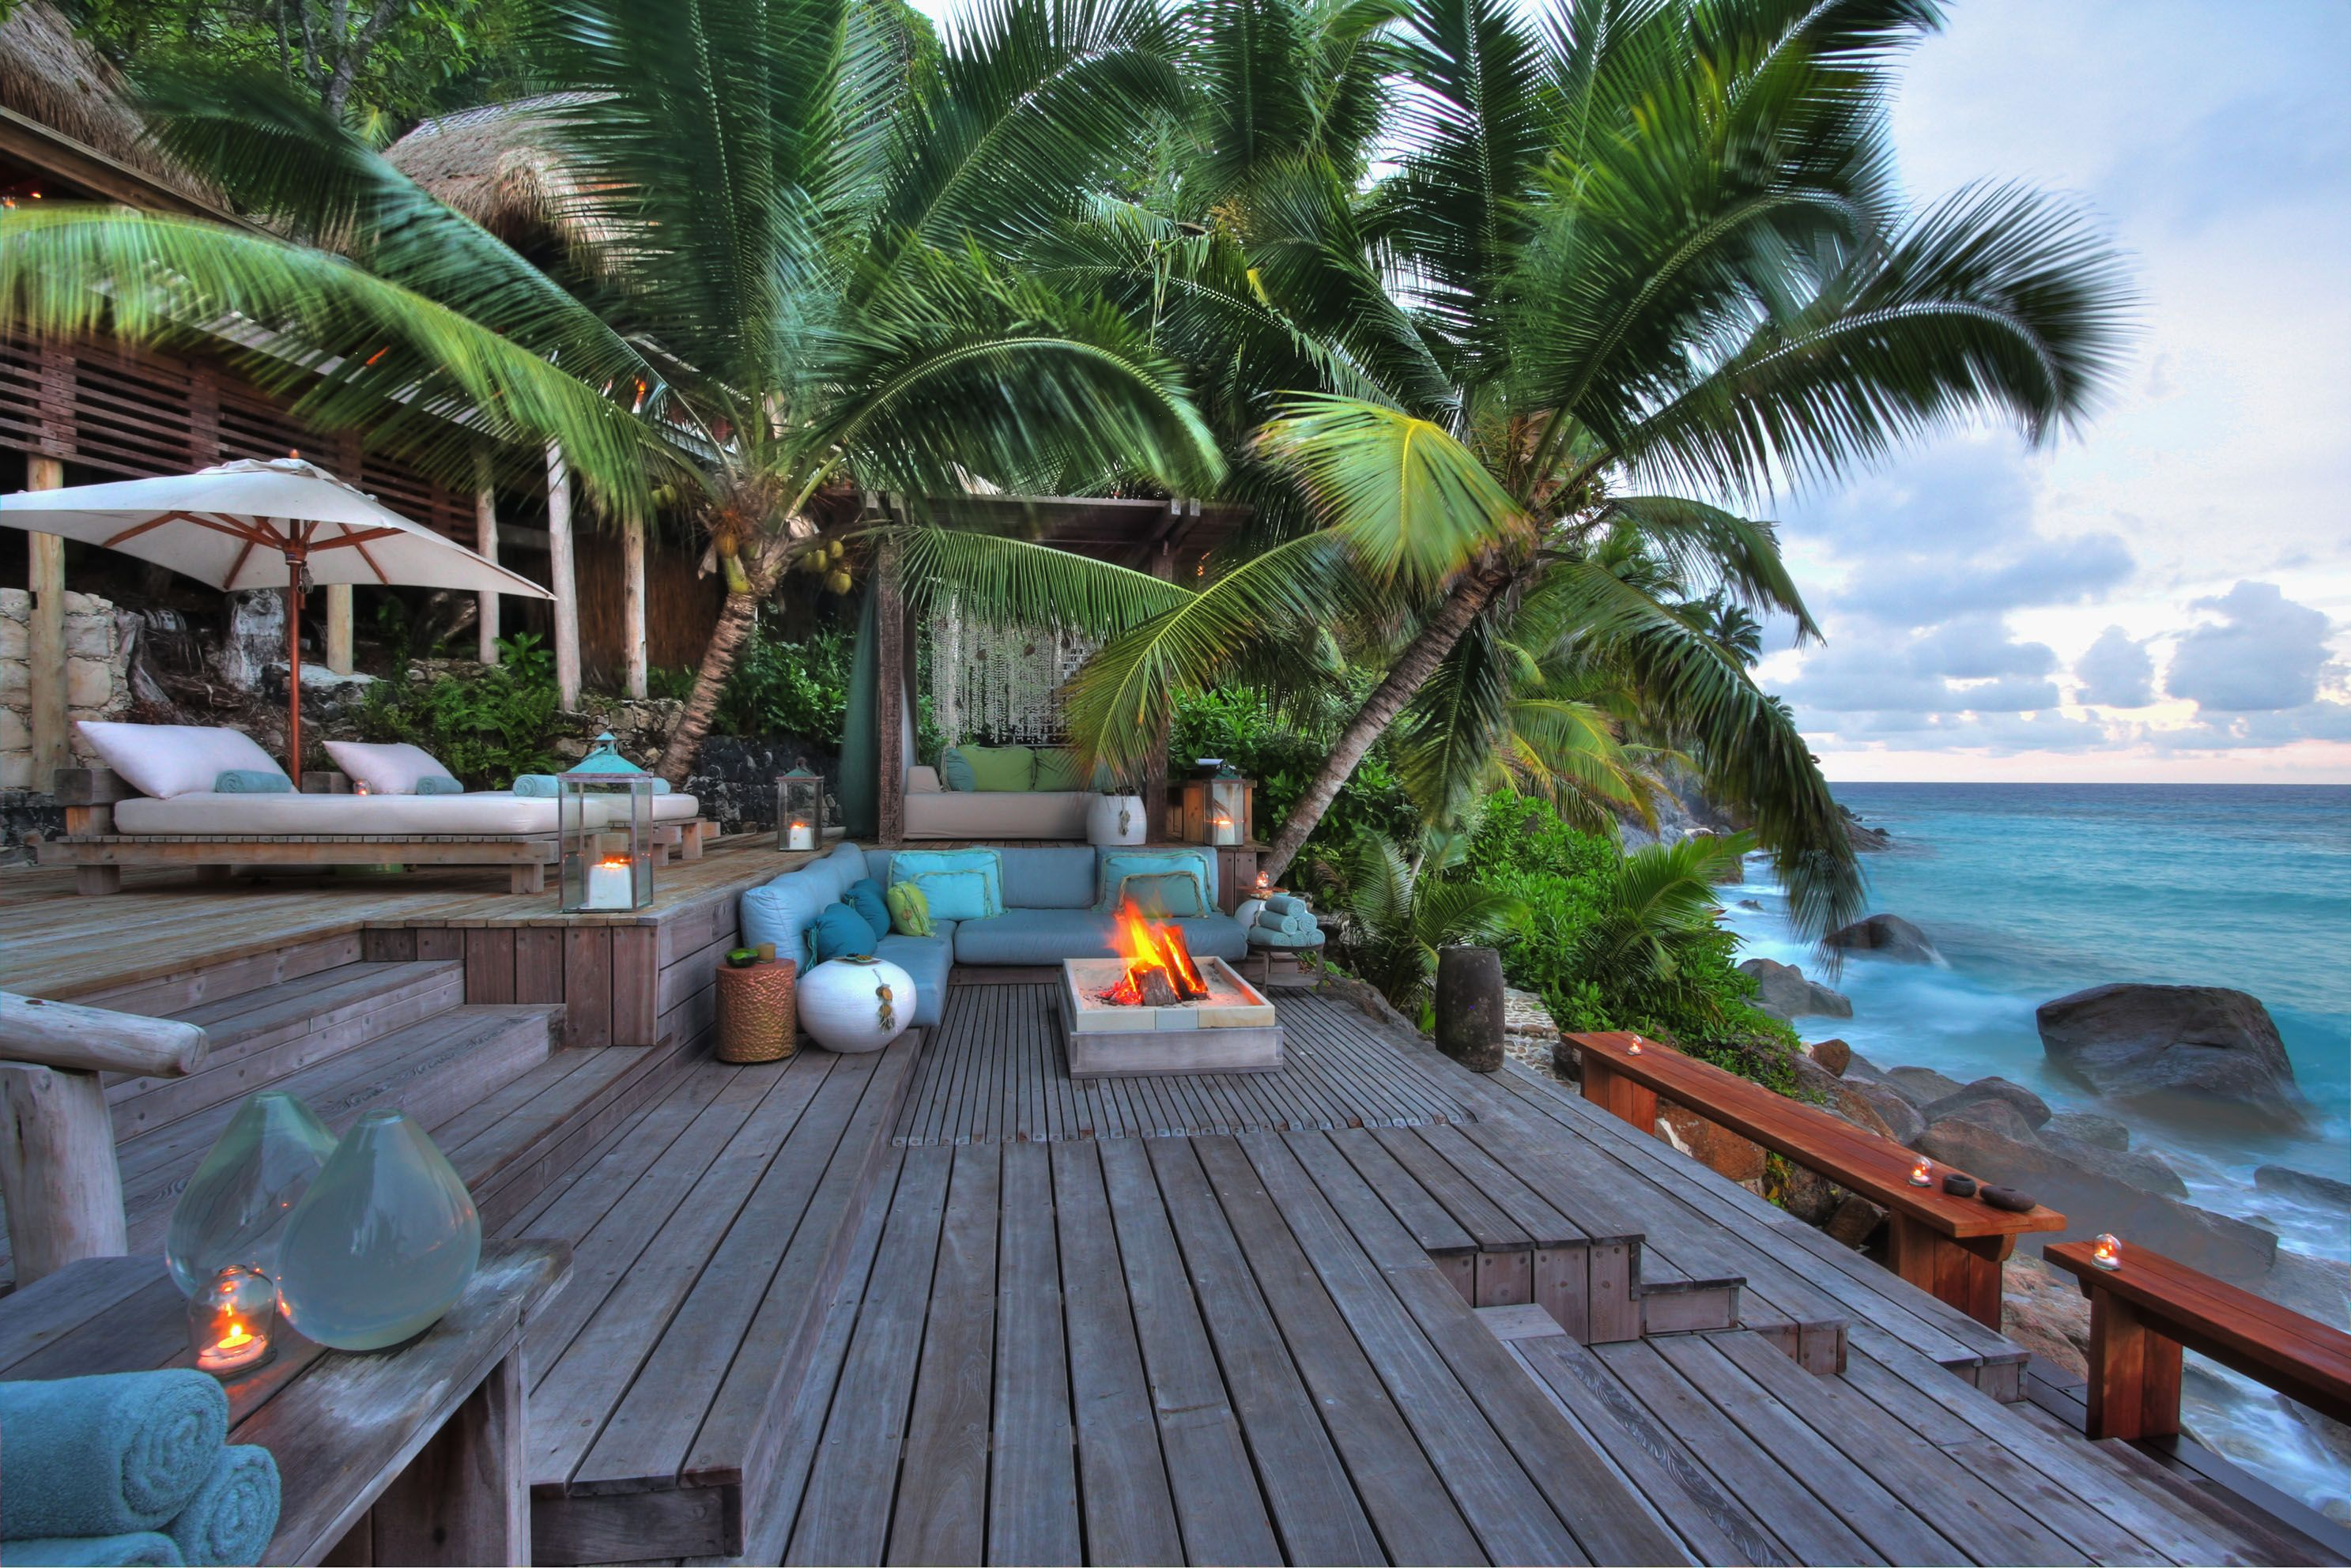 TROPICAL ISLAND GETAWAYS TO ESCAPE THE COLD Seychelles Island - 8 places to visit in the seychelles islands